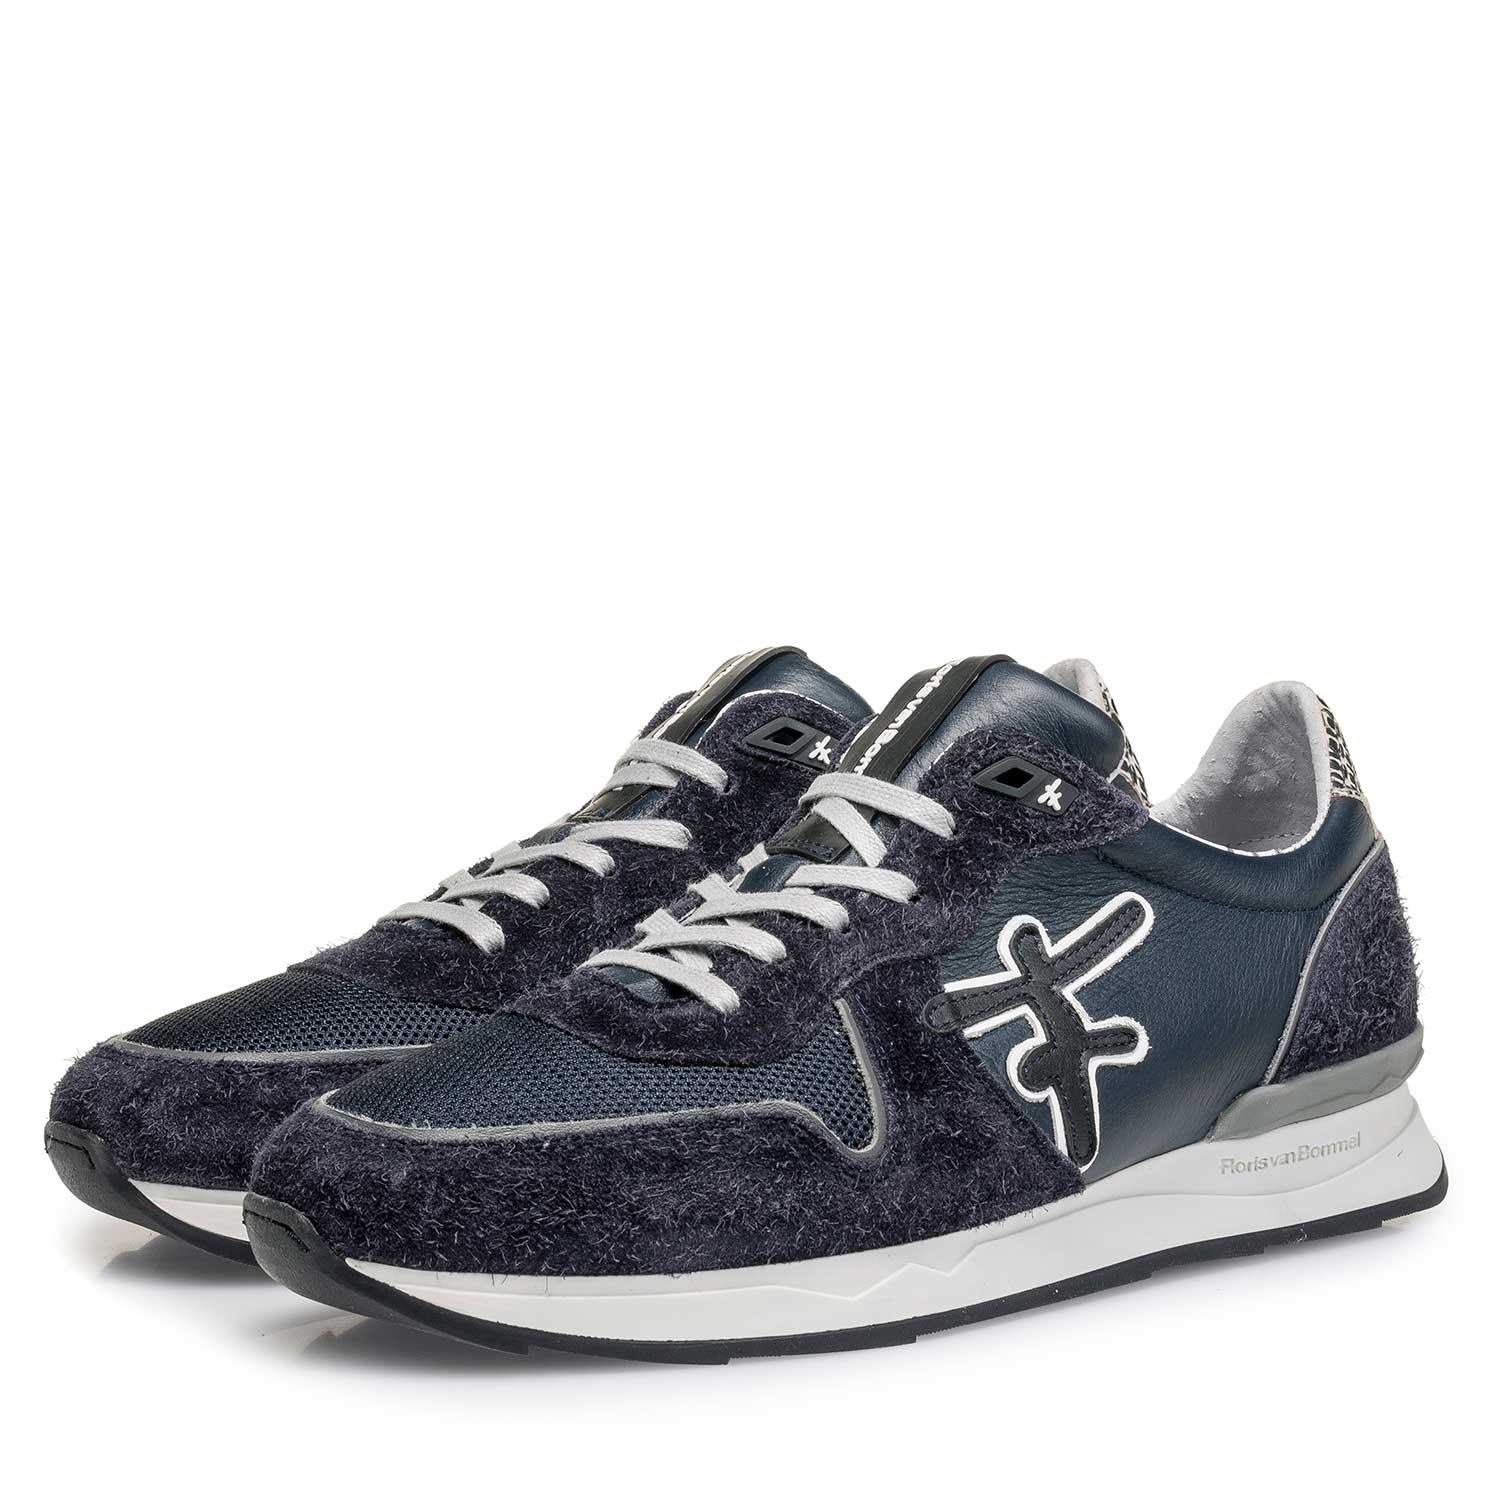 16246/05 - Dark blue calf leather sneaker